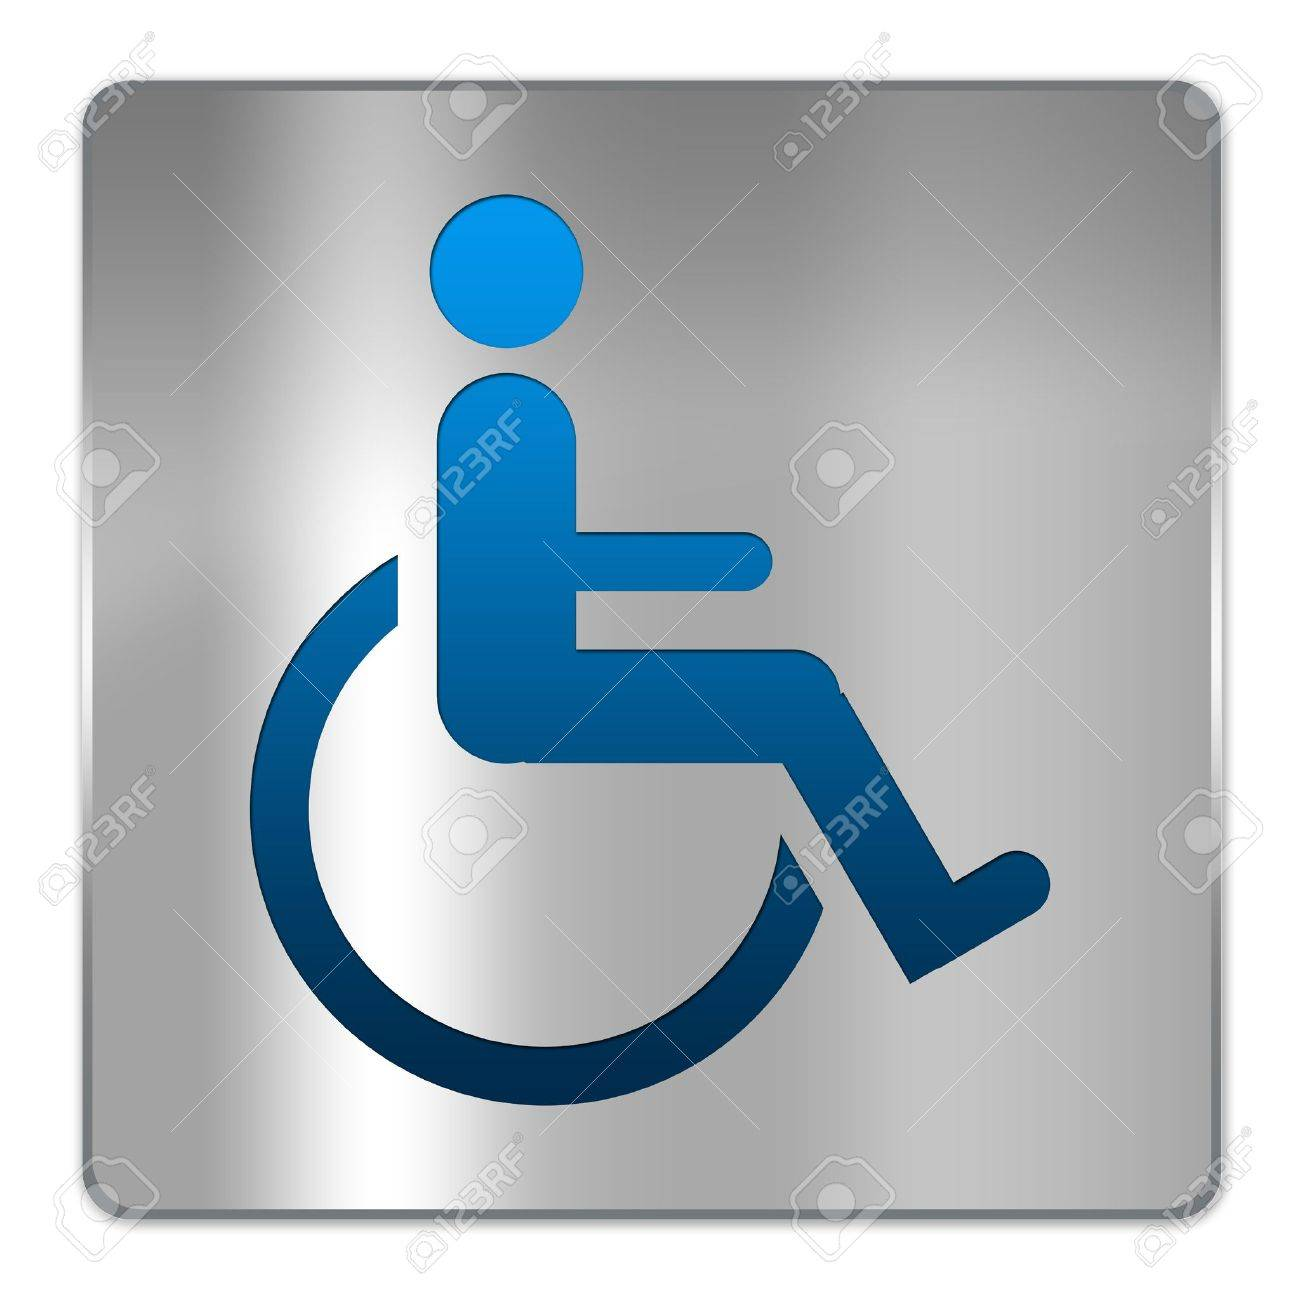 Handicap Bathroom Video On Facebook square silver metallic plate for wheelchair handicap toilet sign